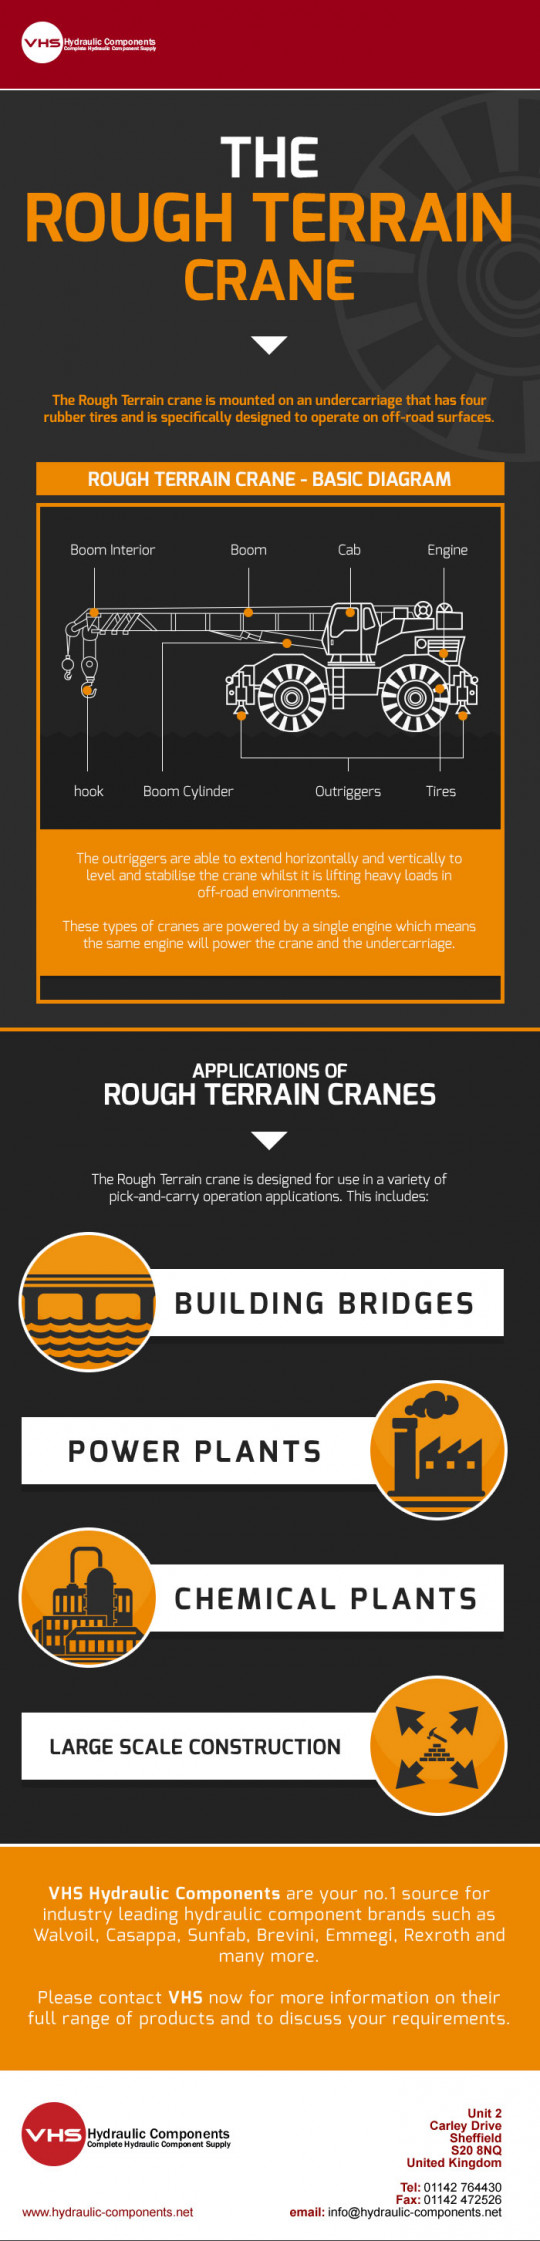 The Rough Terrain Crane